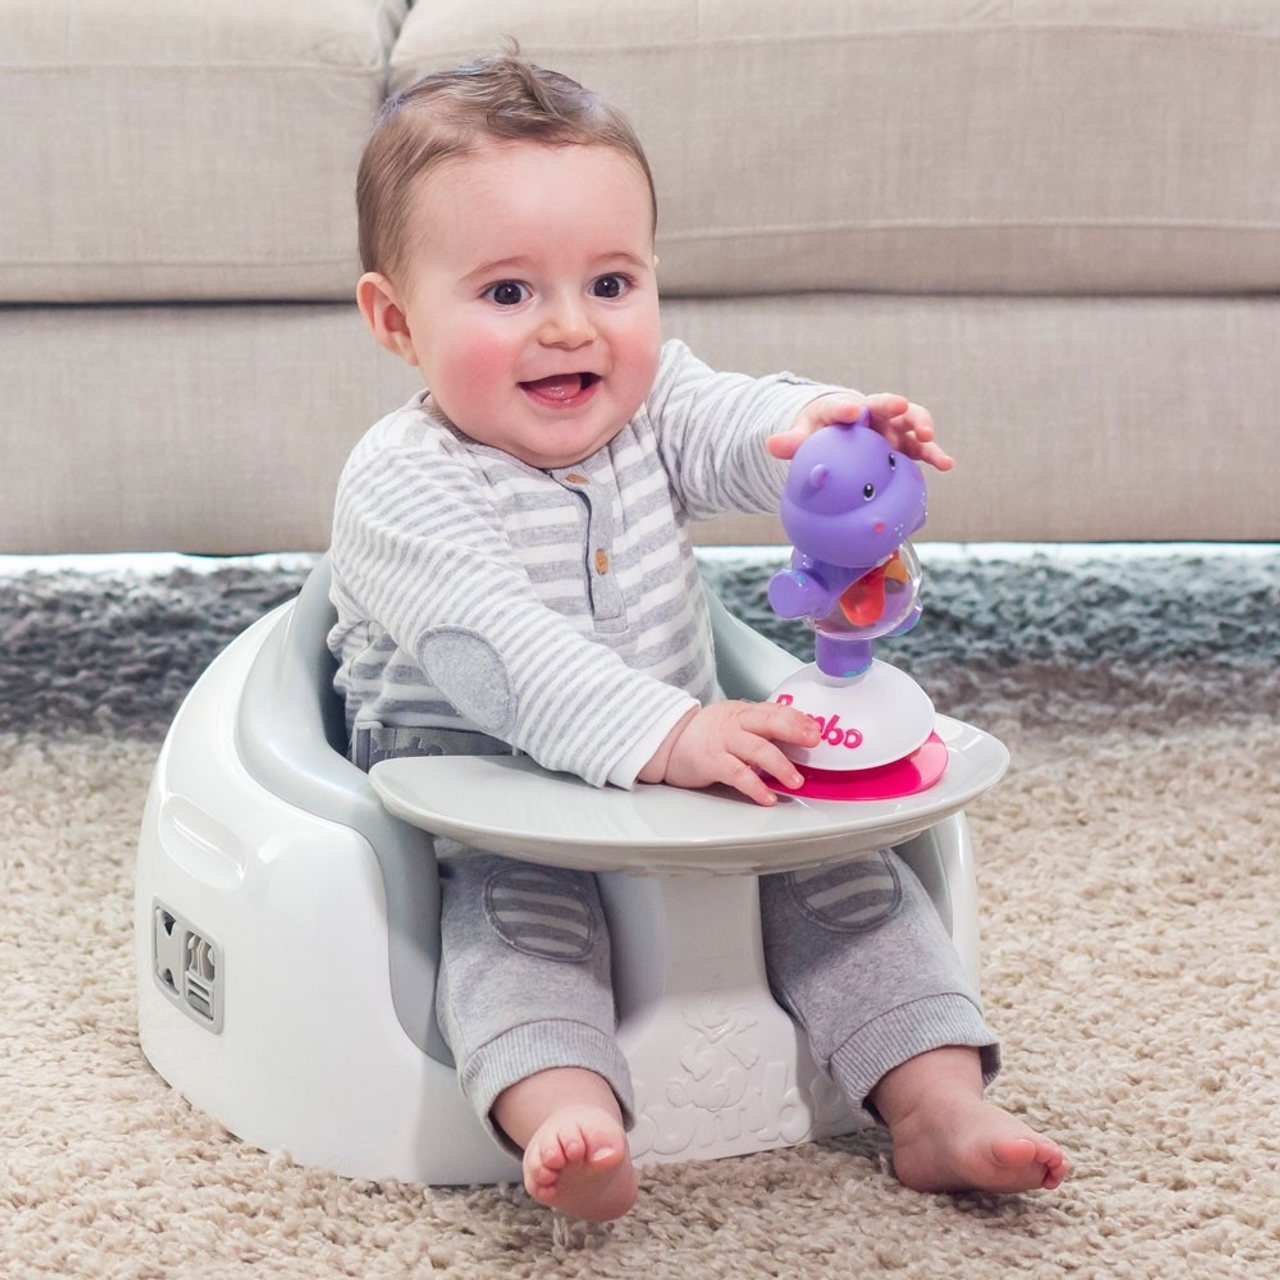 Bumbo Multi Seat grows with your child